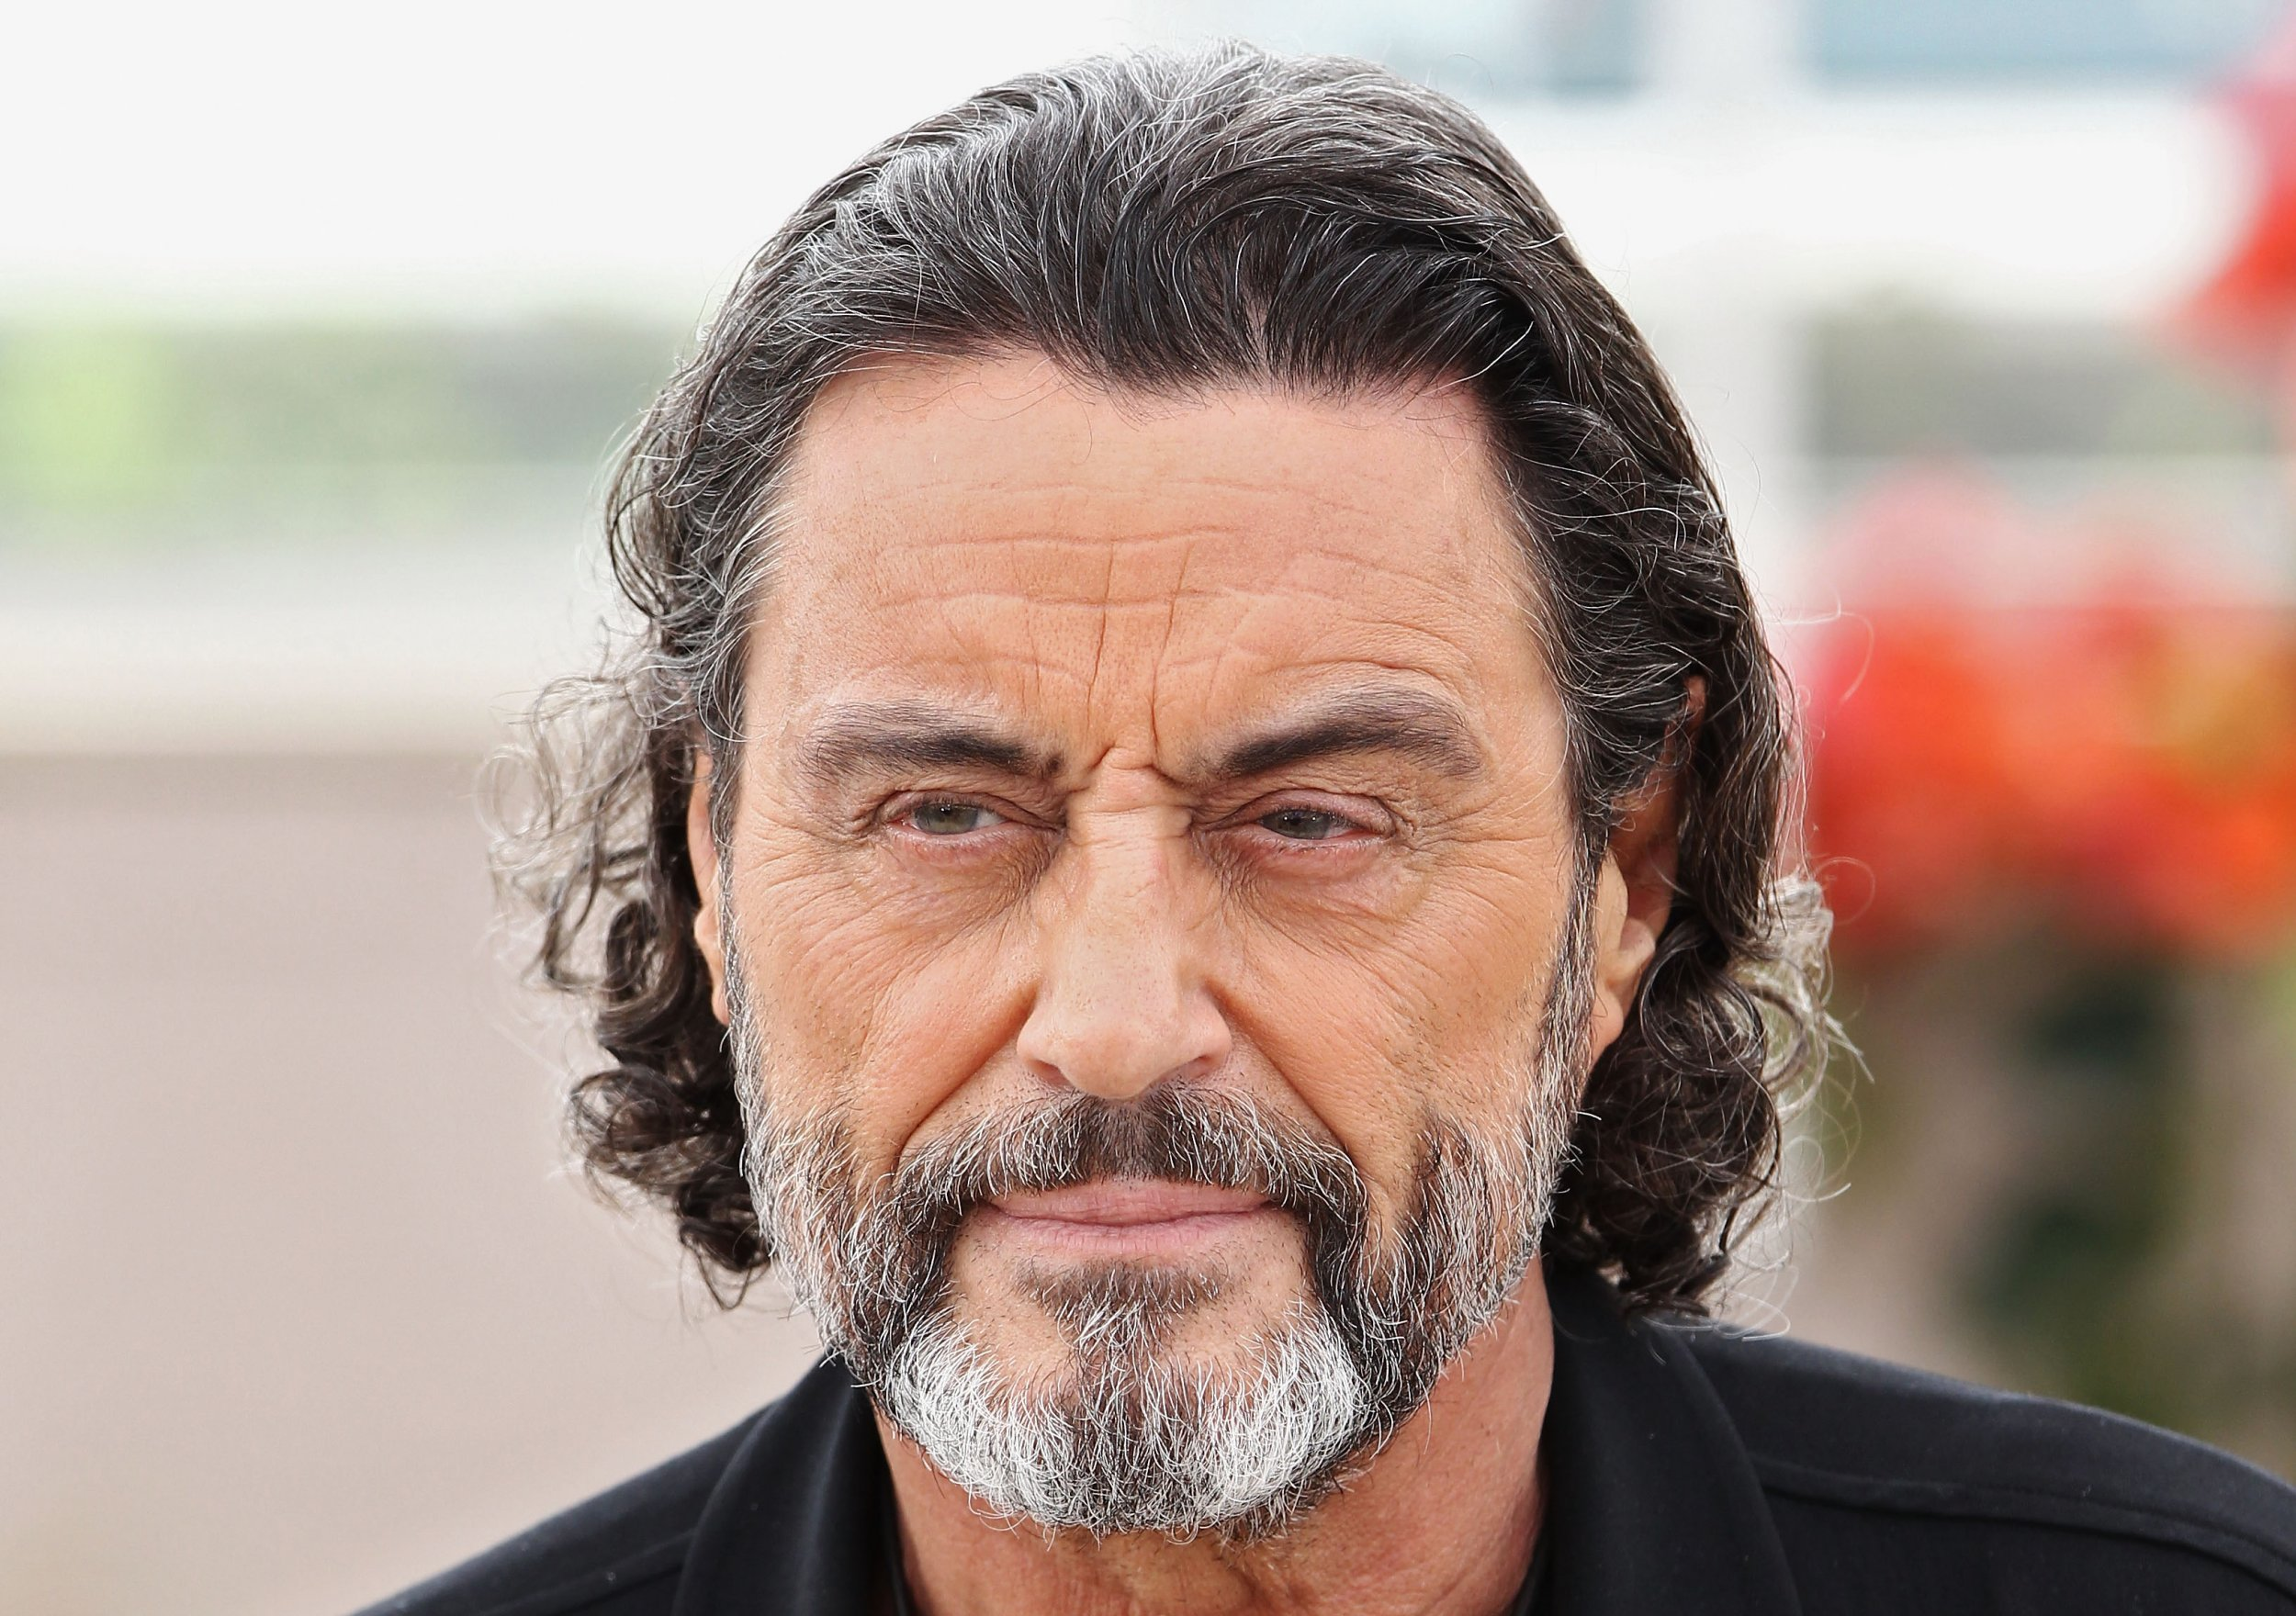 Ian McShane on 'American Gods' and the 'Deadwood' Movie